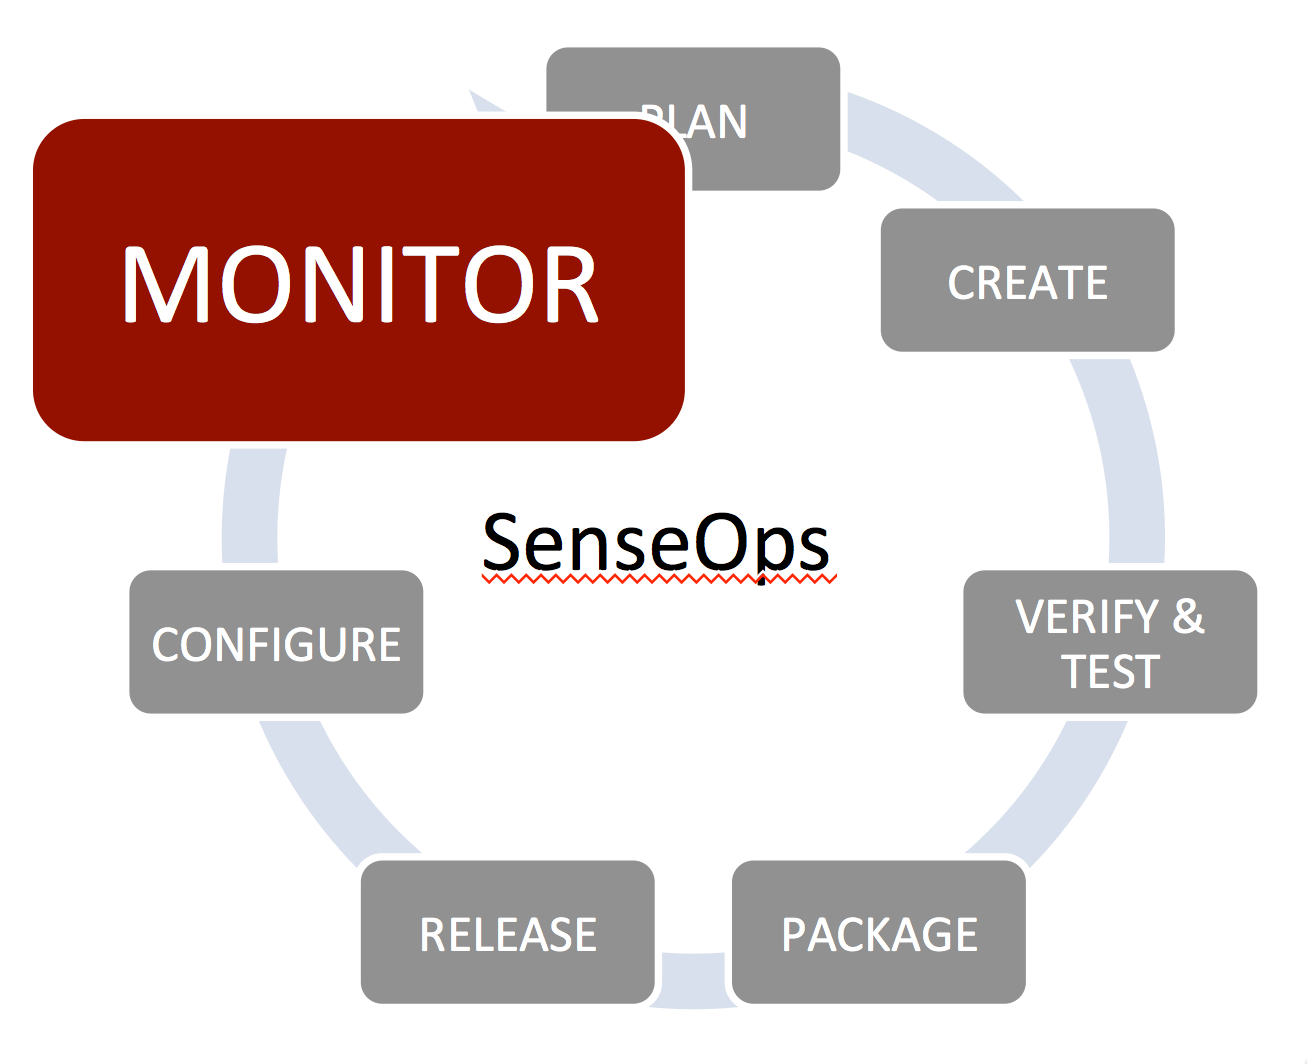 Monitoring and auto-starting Node js services on Windows